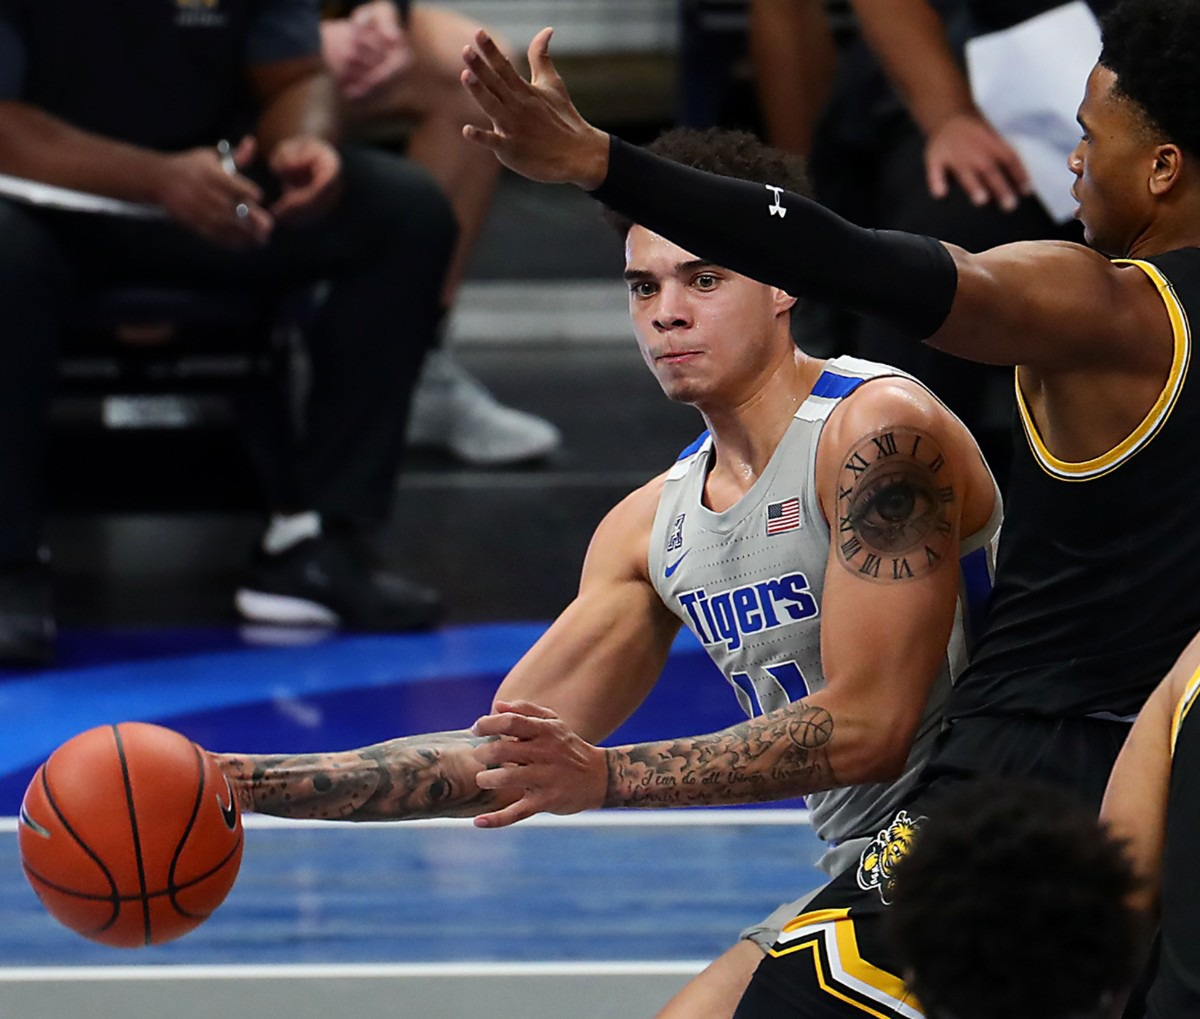 <strong>University of Memphis guard Lester Quinones (11) passes the ball during a Jan. 21, 2021, game against the Wichita State Shockers at FedExForum.</strong> (Patrick Lantrip/Daily Memphian)